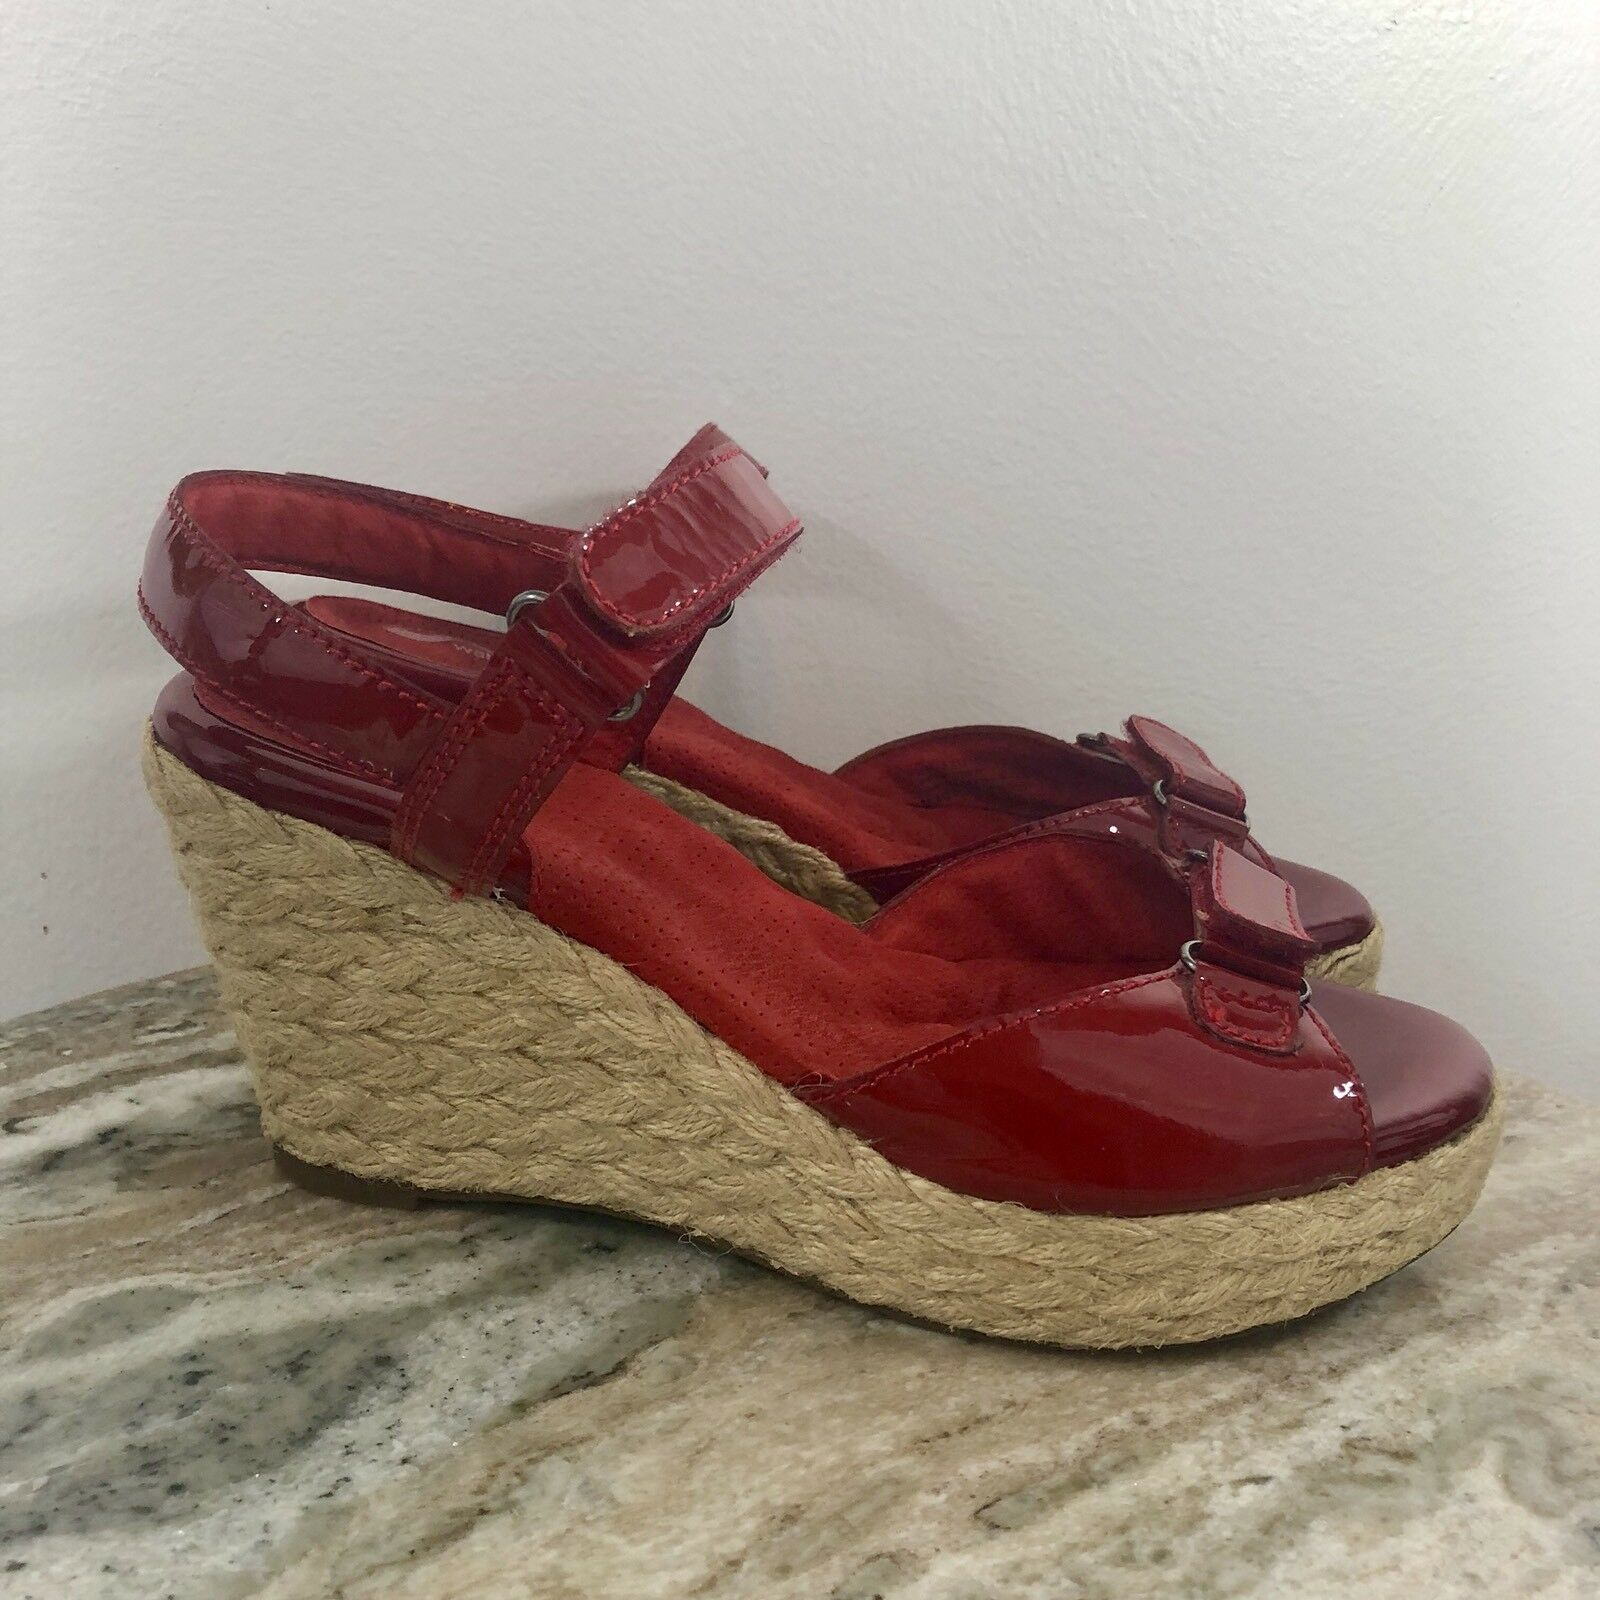 Softwalk Women's Dress Sandals 9w Wide Patent Leather Wedge Rope Comfort Red